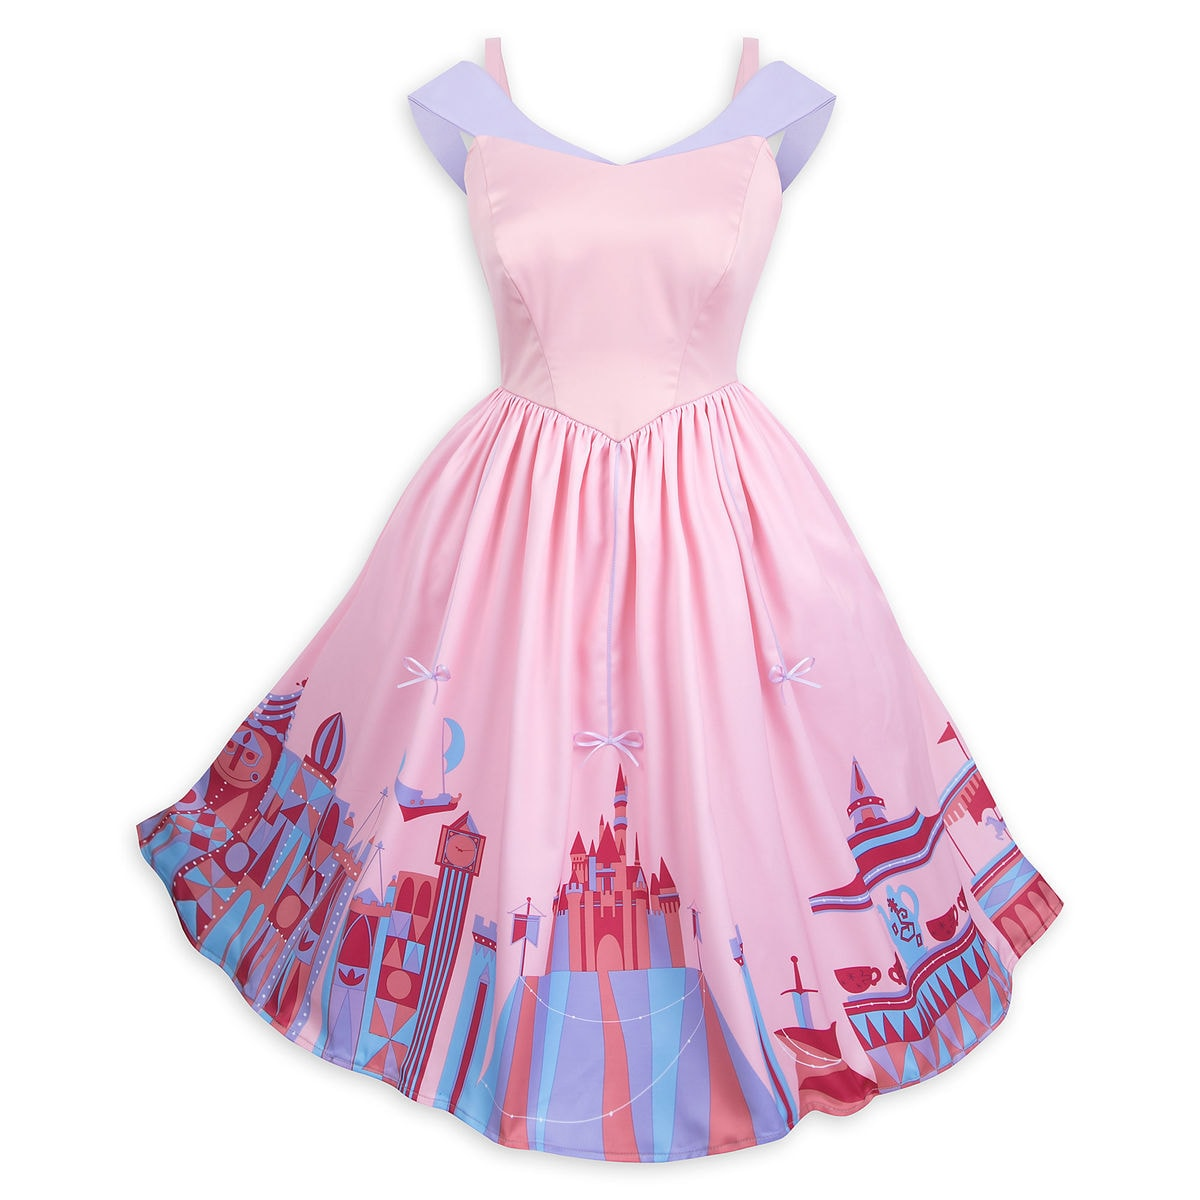 fantasyland dress for women by her universe shopdisney